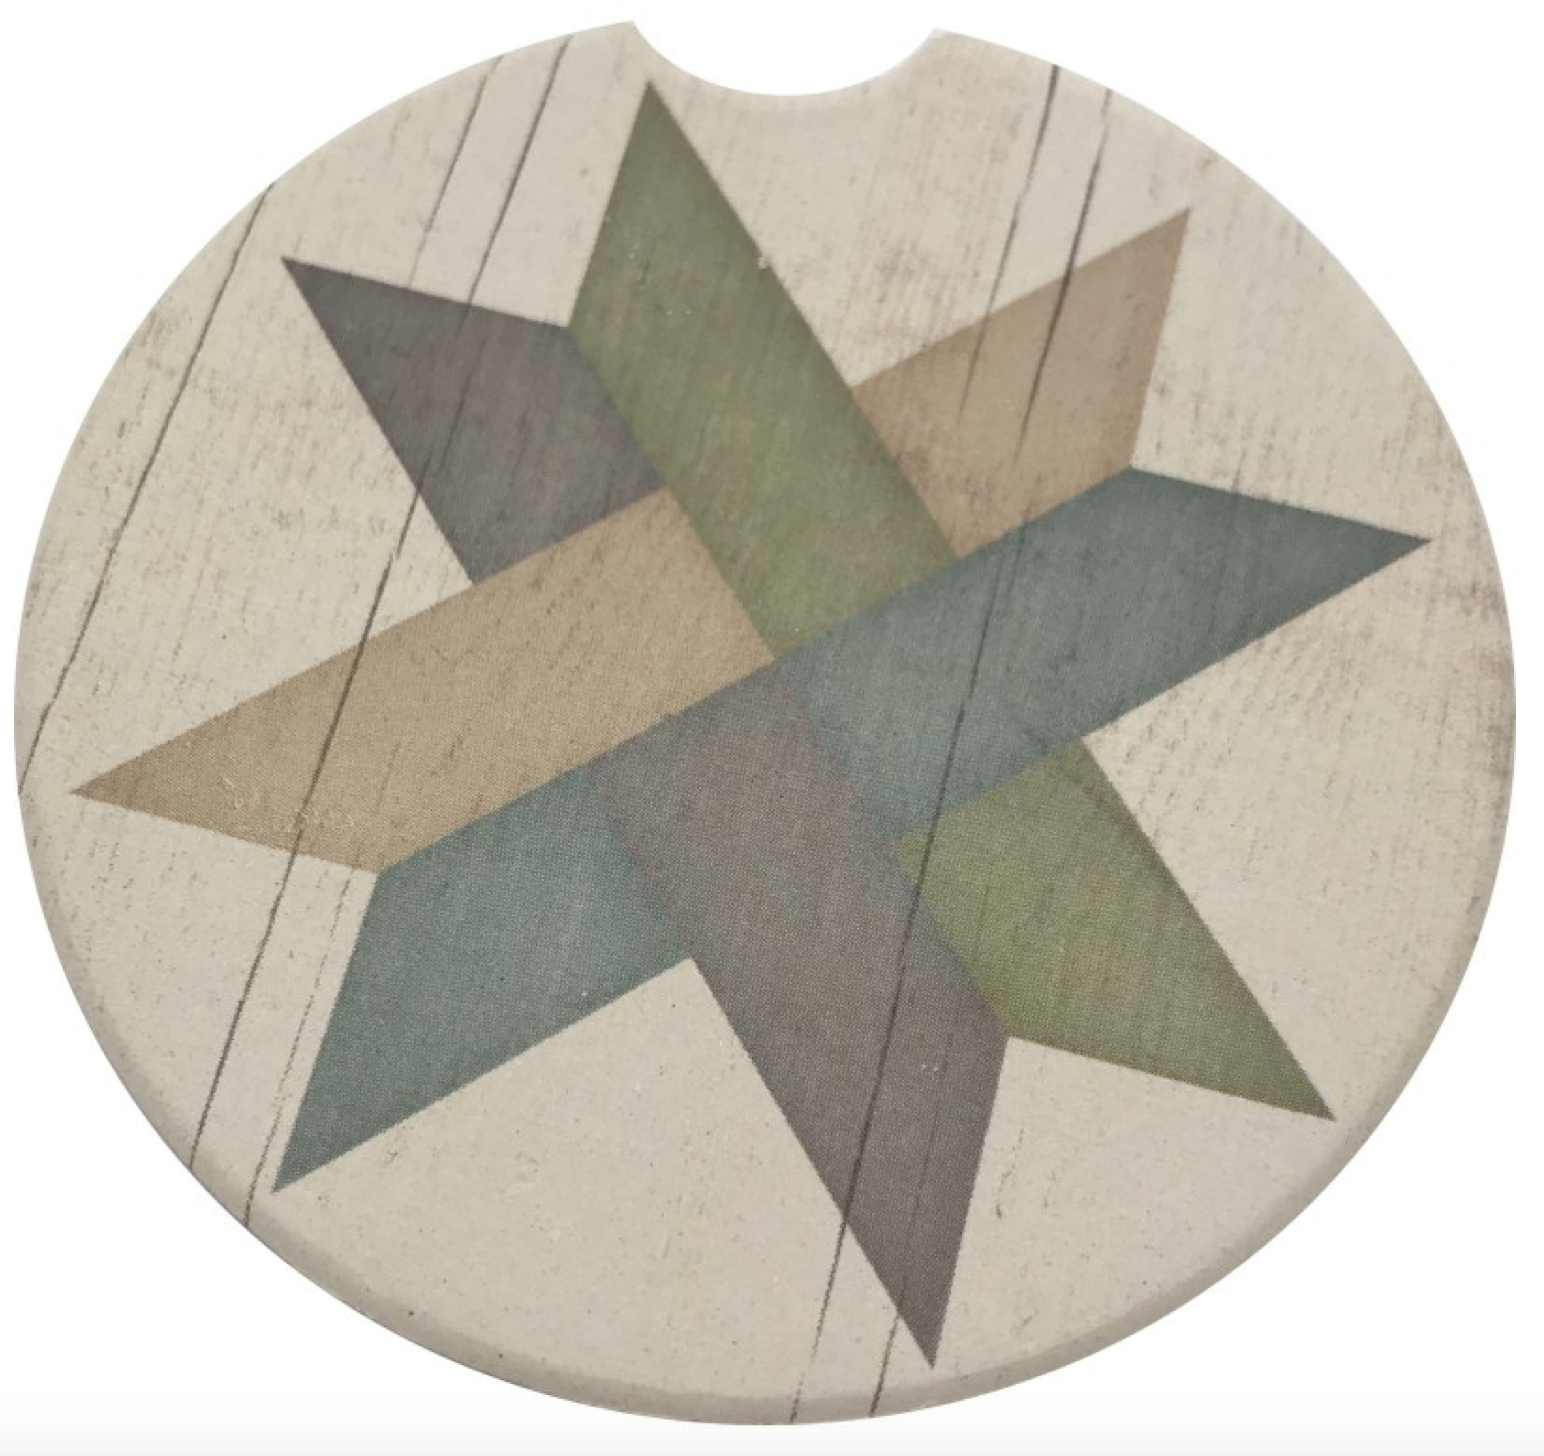 Weave Star Car Coaster Absorbent Stone